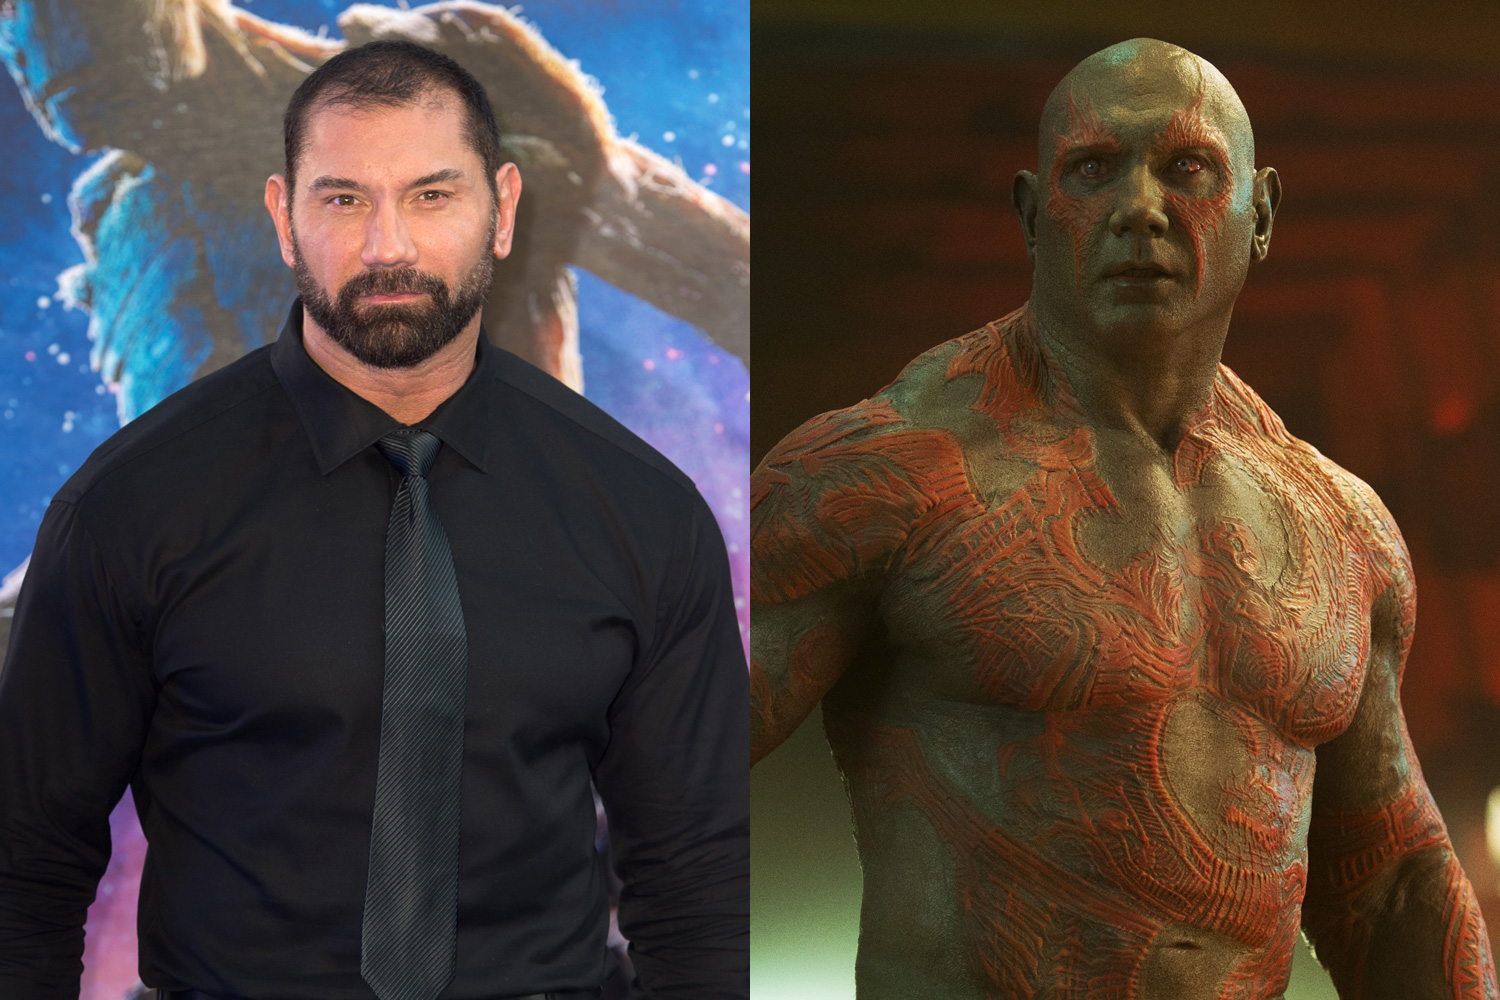 Former WWE heavyweight champ Dave Bautista plays Drax the Destroyer. His 18 prostheses took a team of five makeup artists four hours to apply.